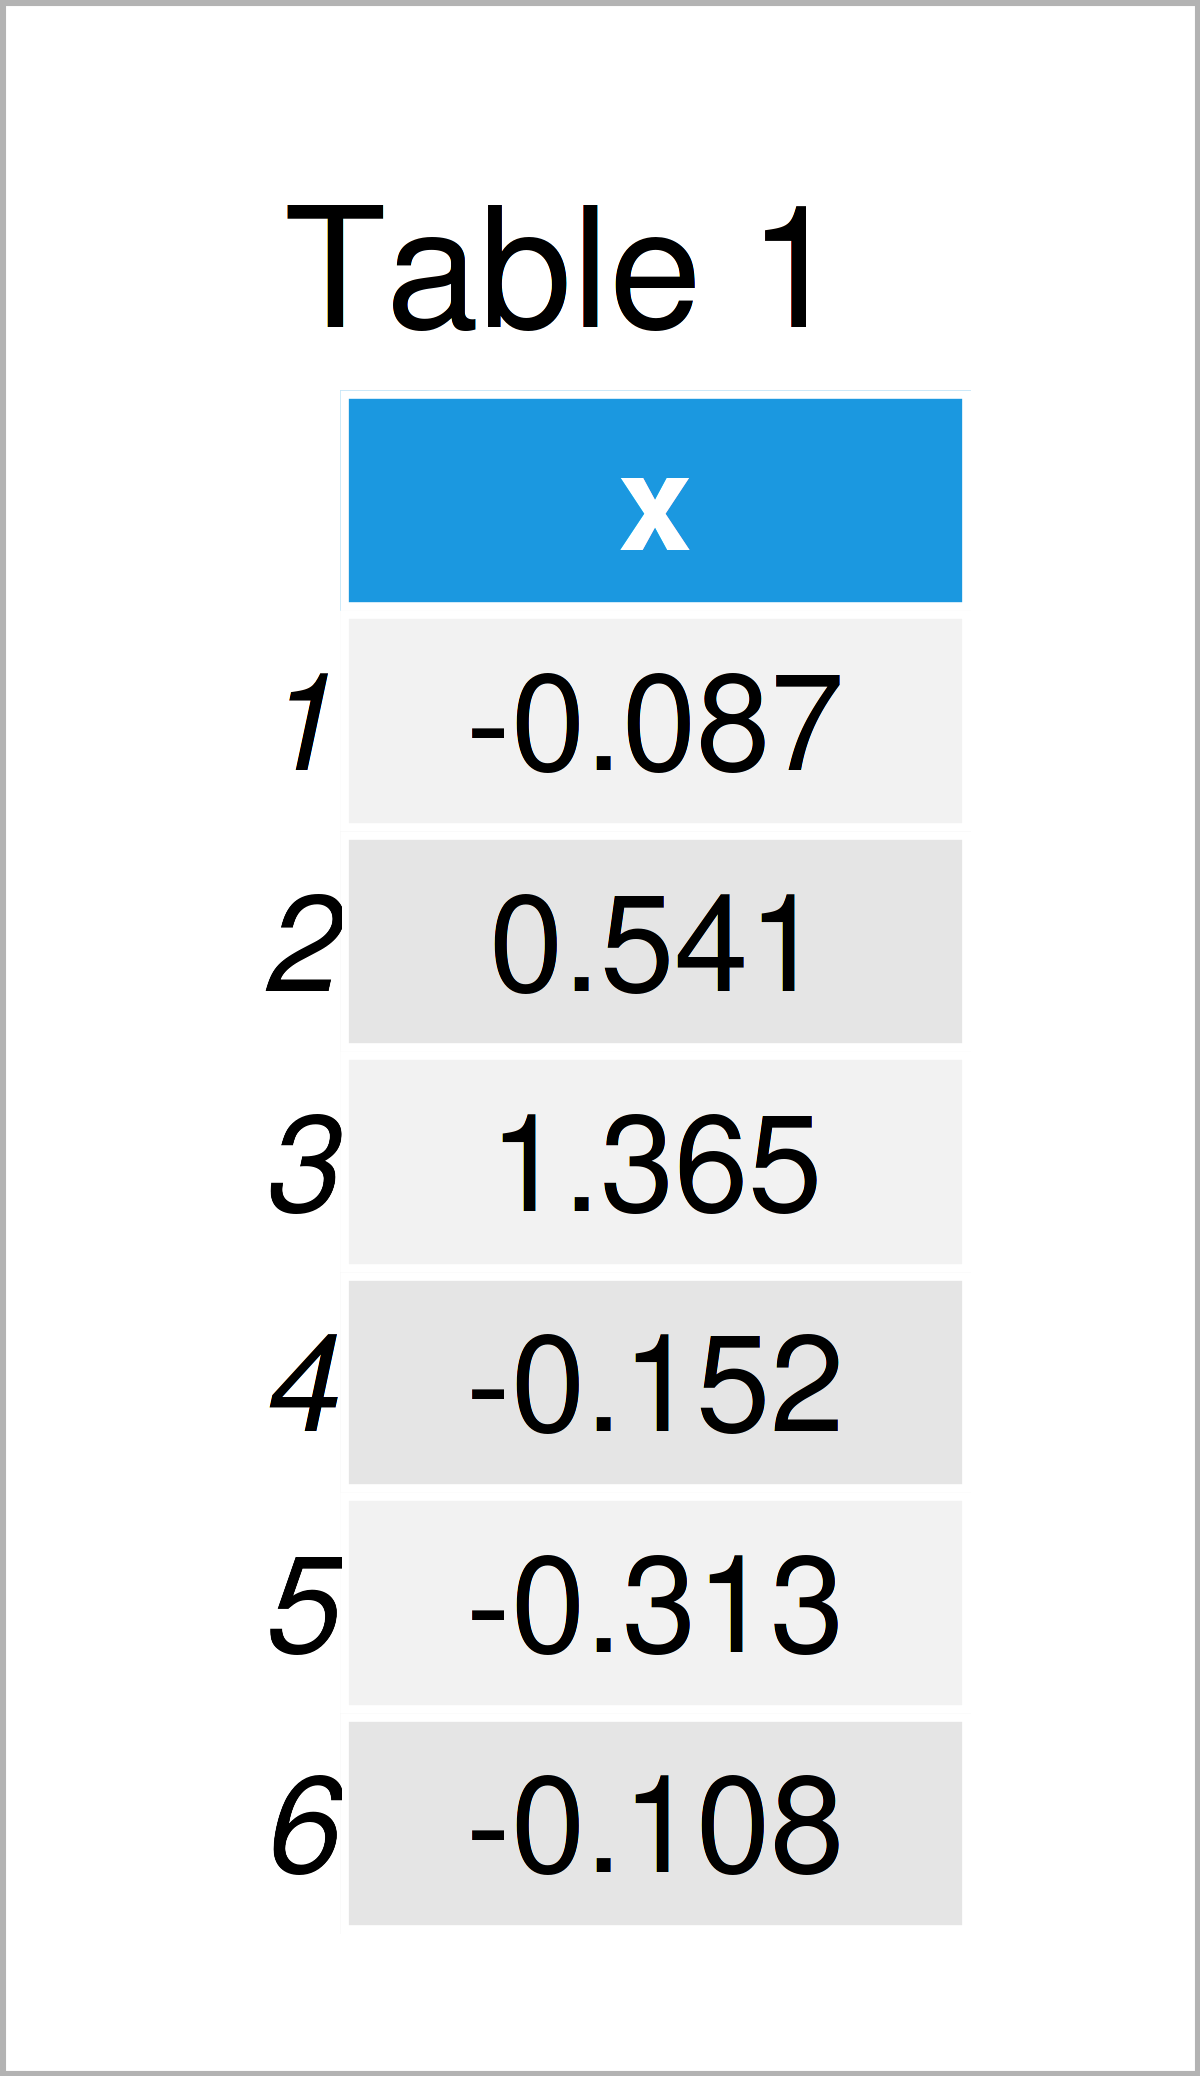 table 1 data frame r warning removed rows containing non finite values